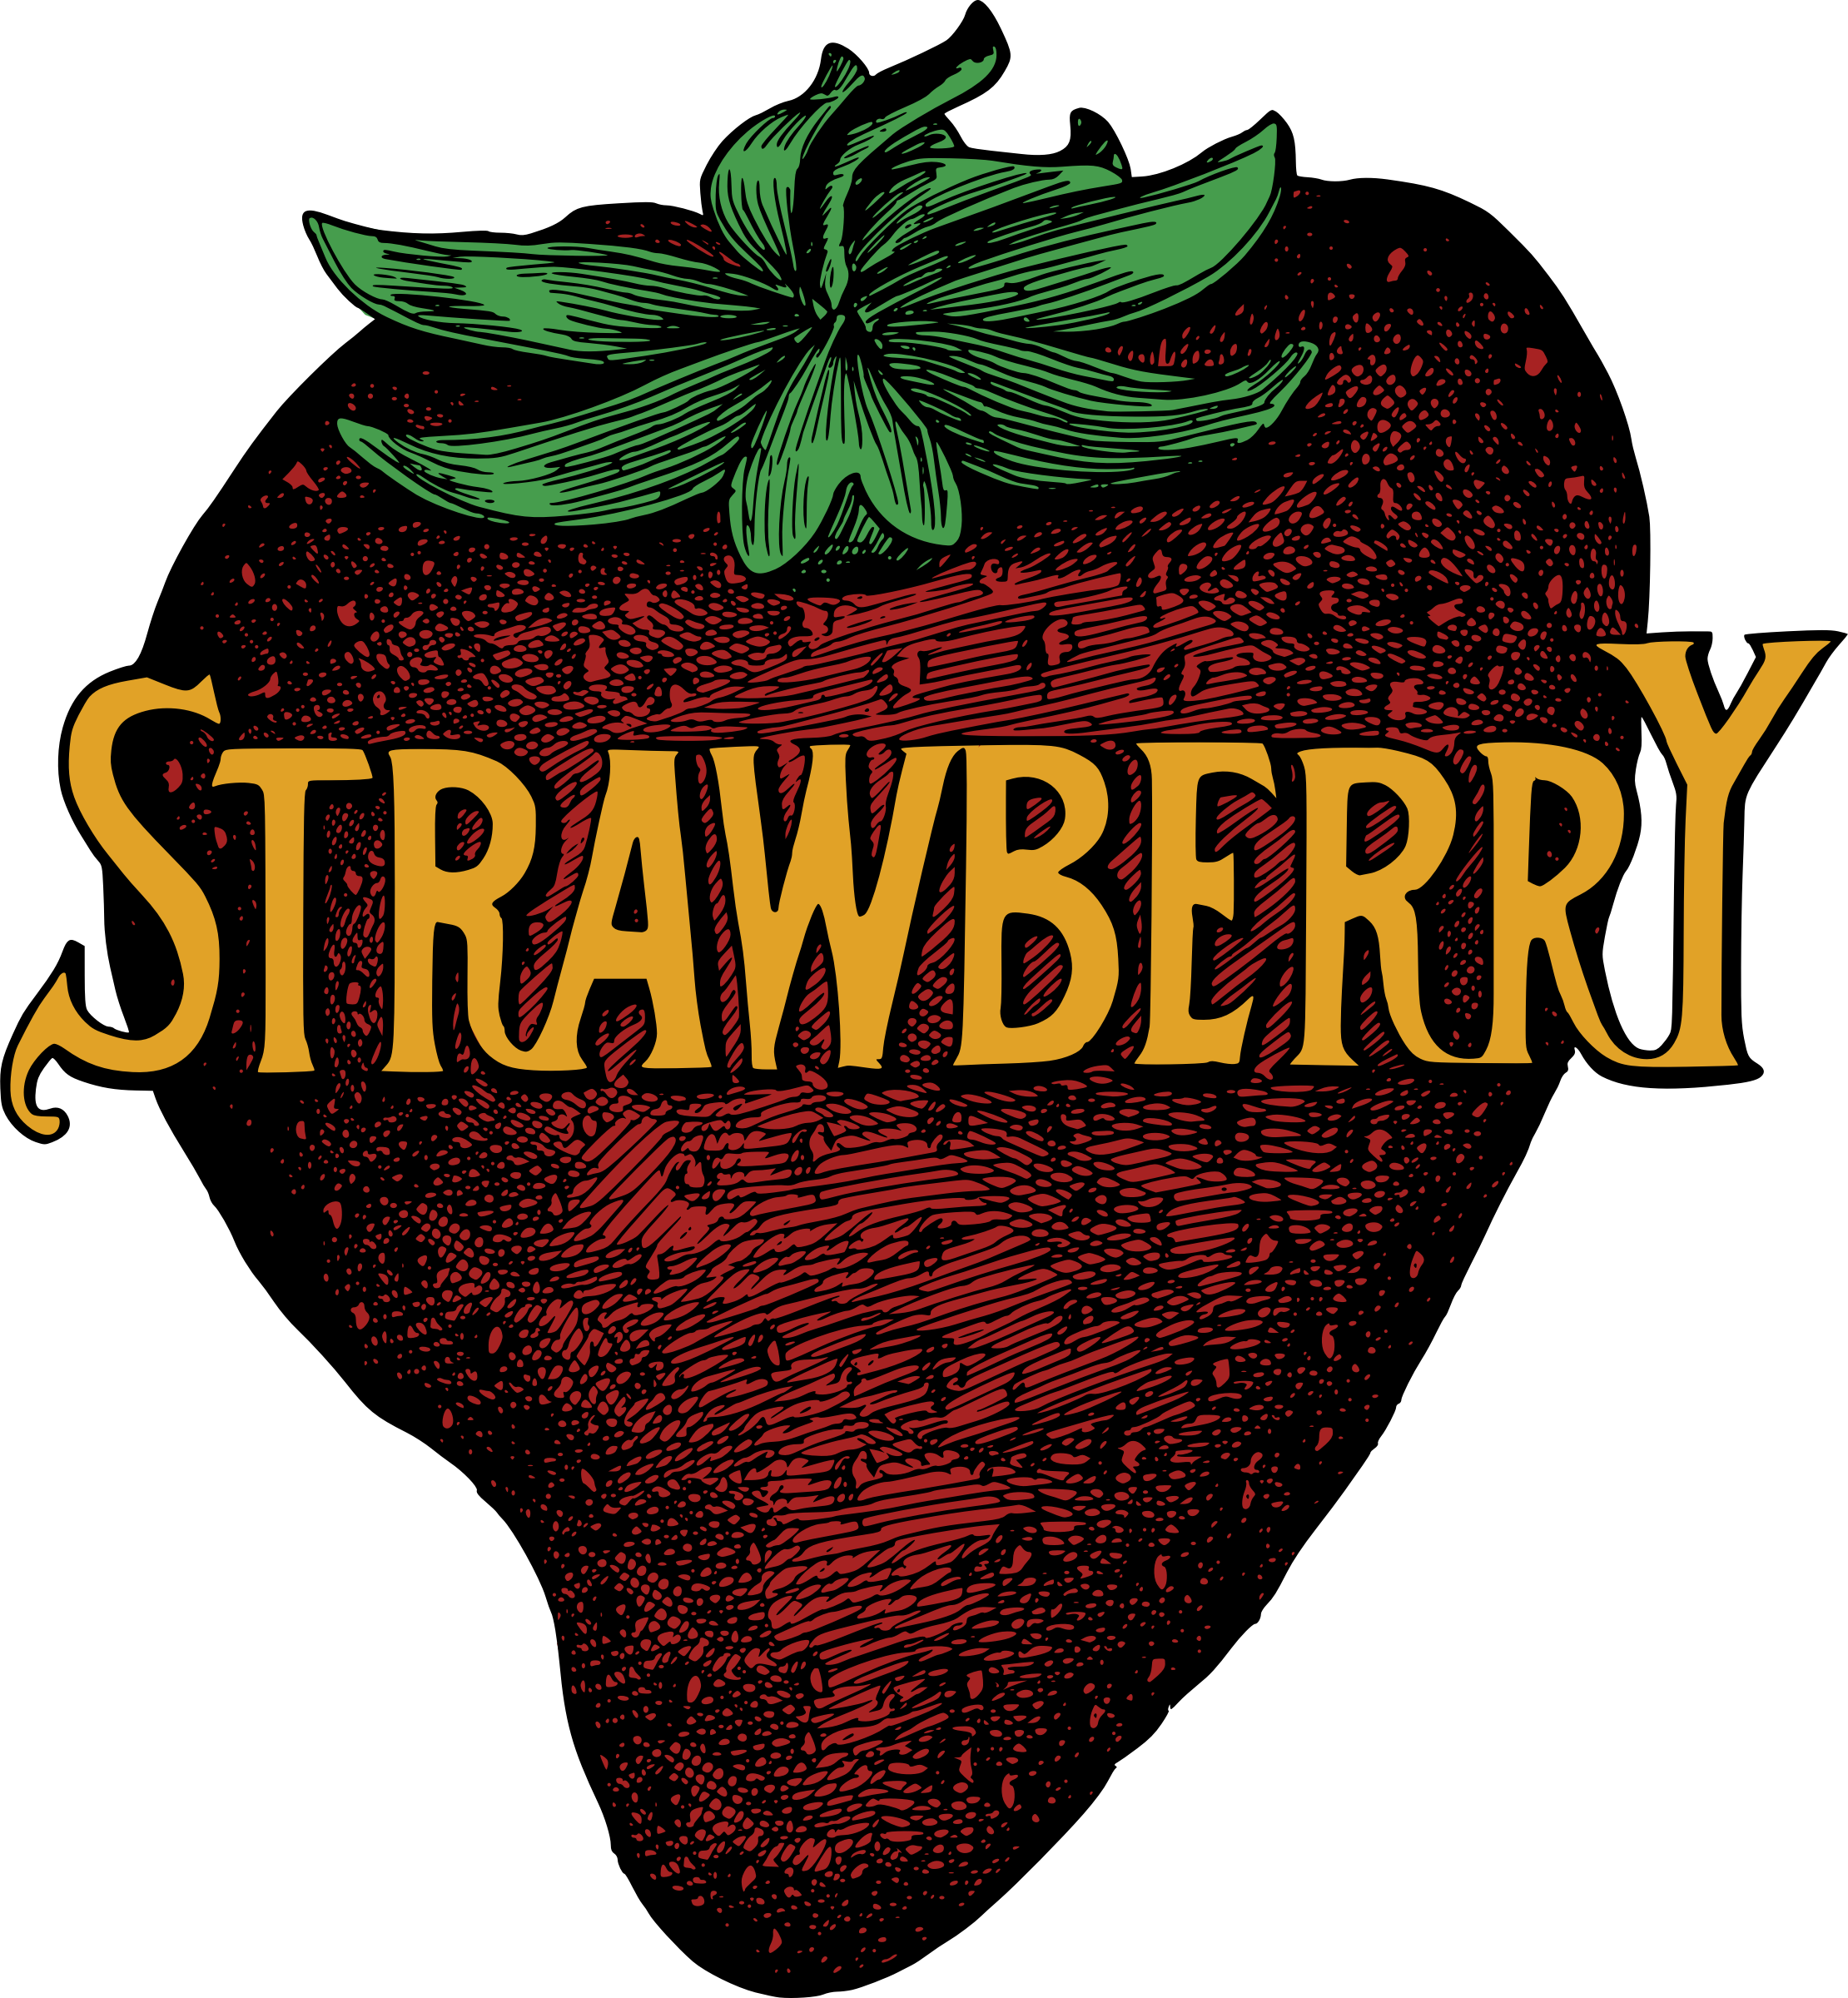 Strawberry - Text by j4p4n